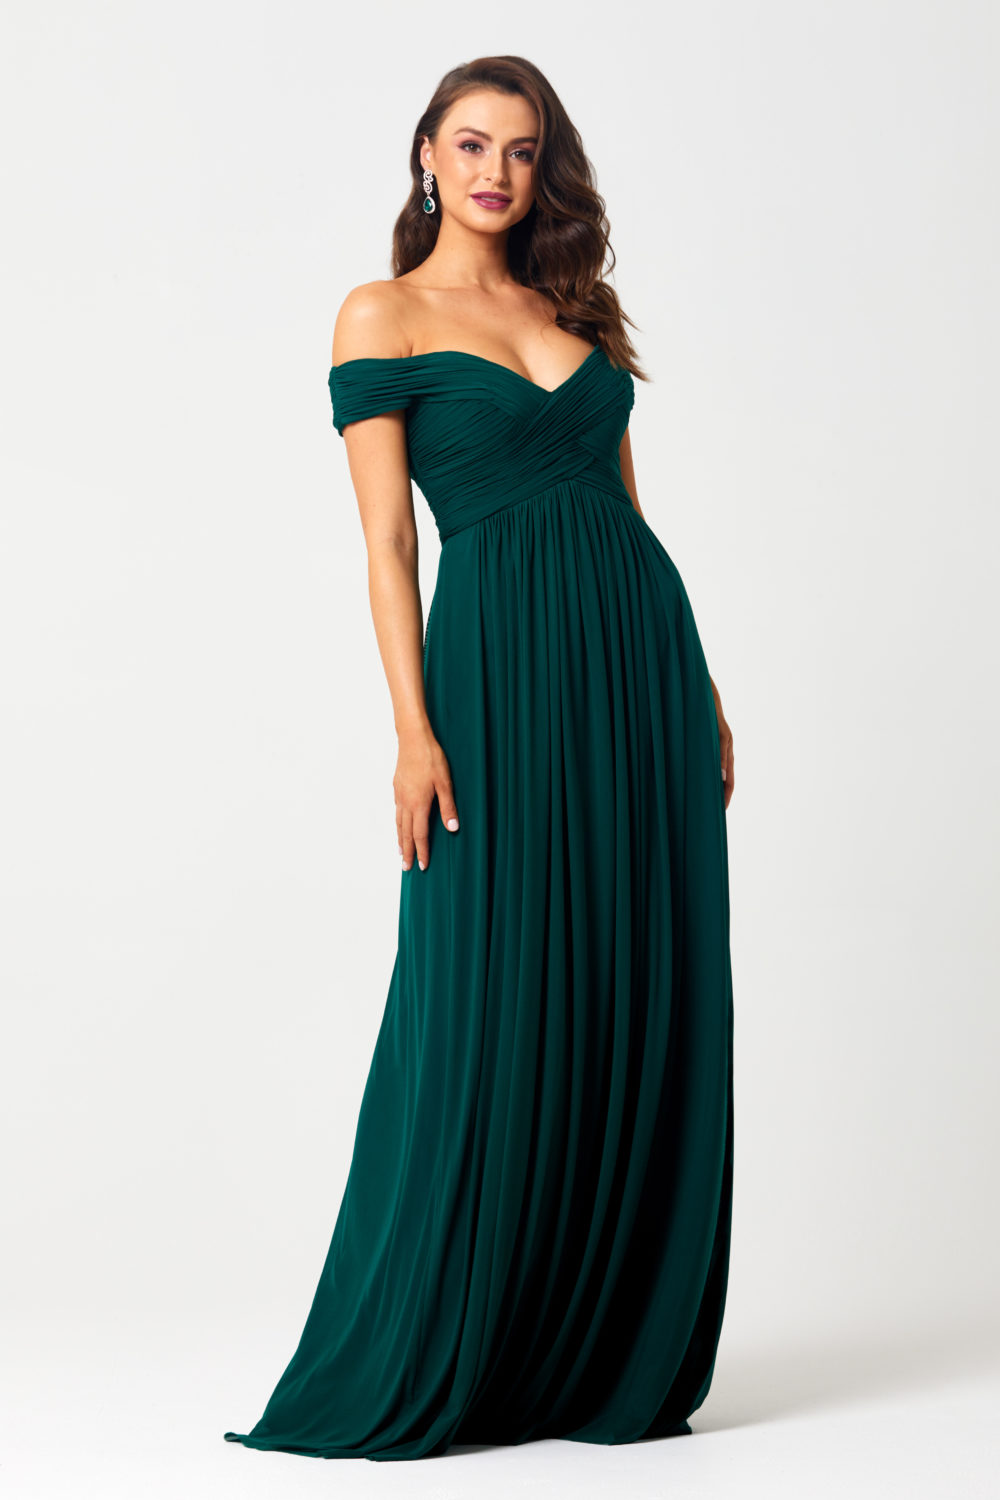 Molly Bridesmaids Dress - TO830